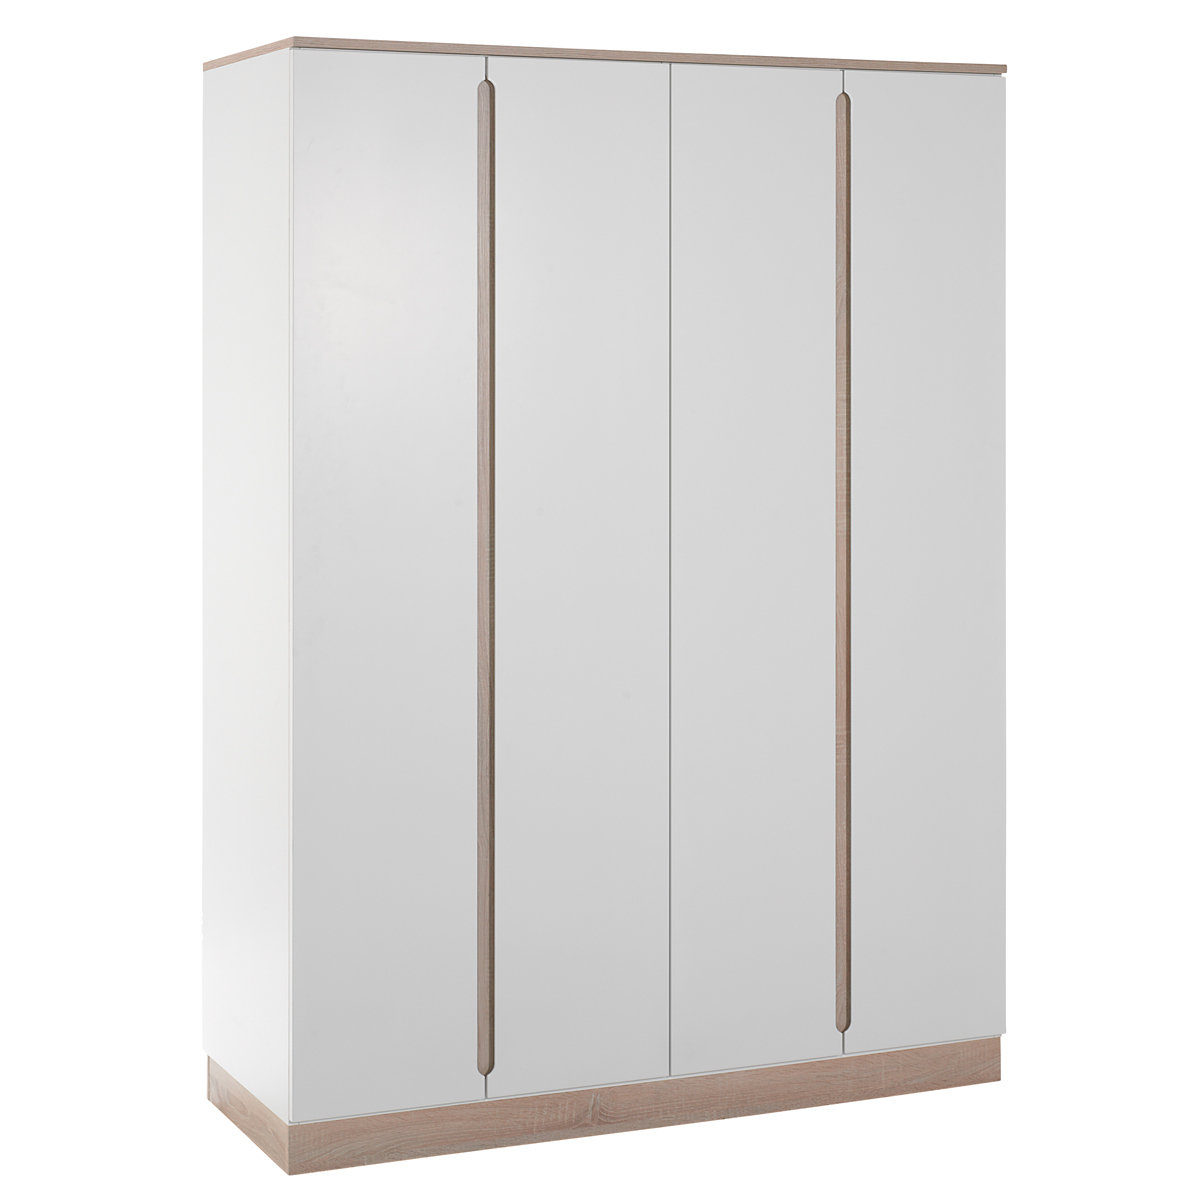 geuther armoire 4 portes collection united armoire. Black Bedroom Furniture Sets. Home Design Ideas